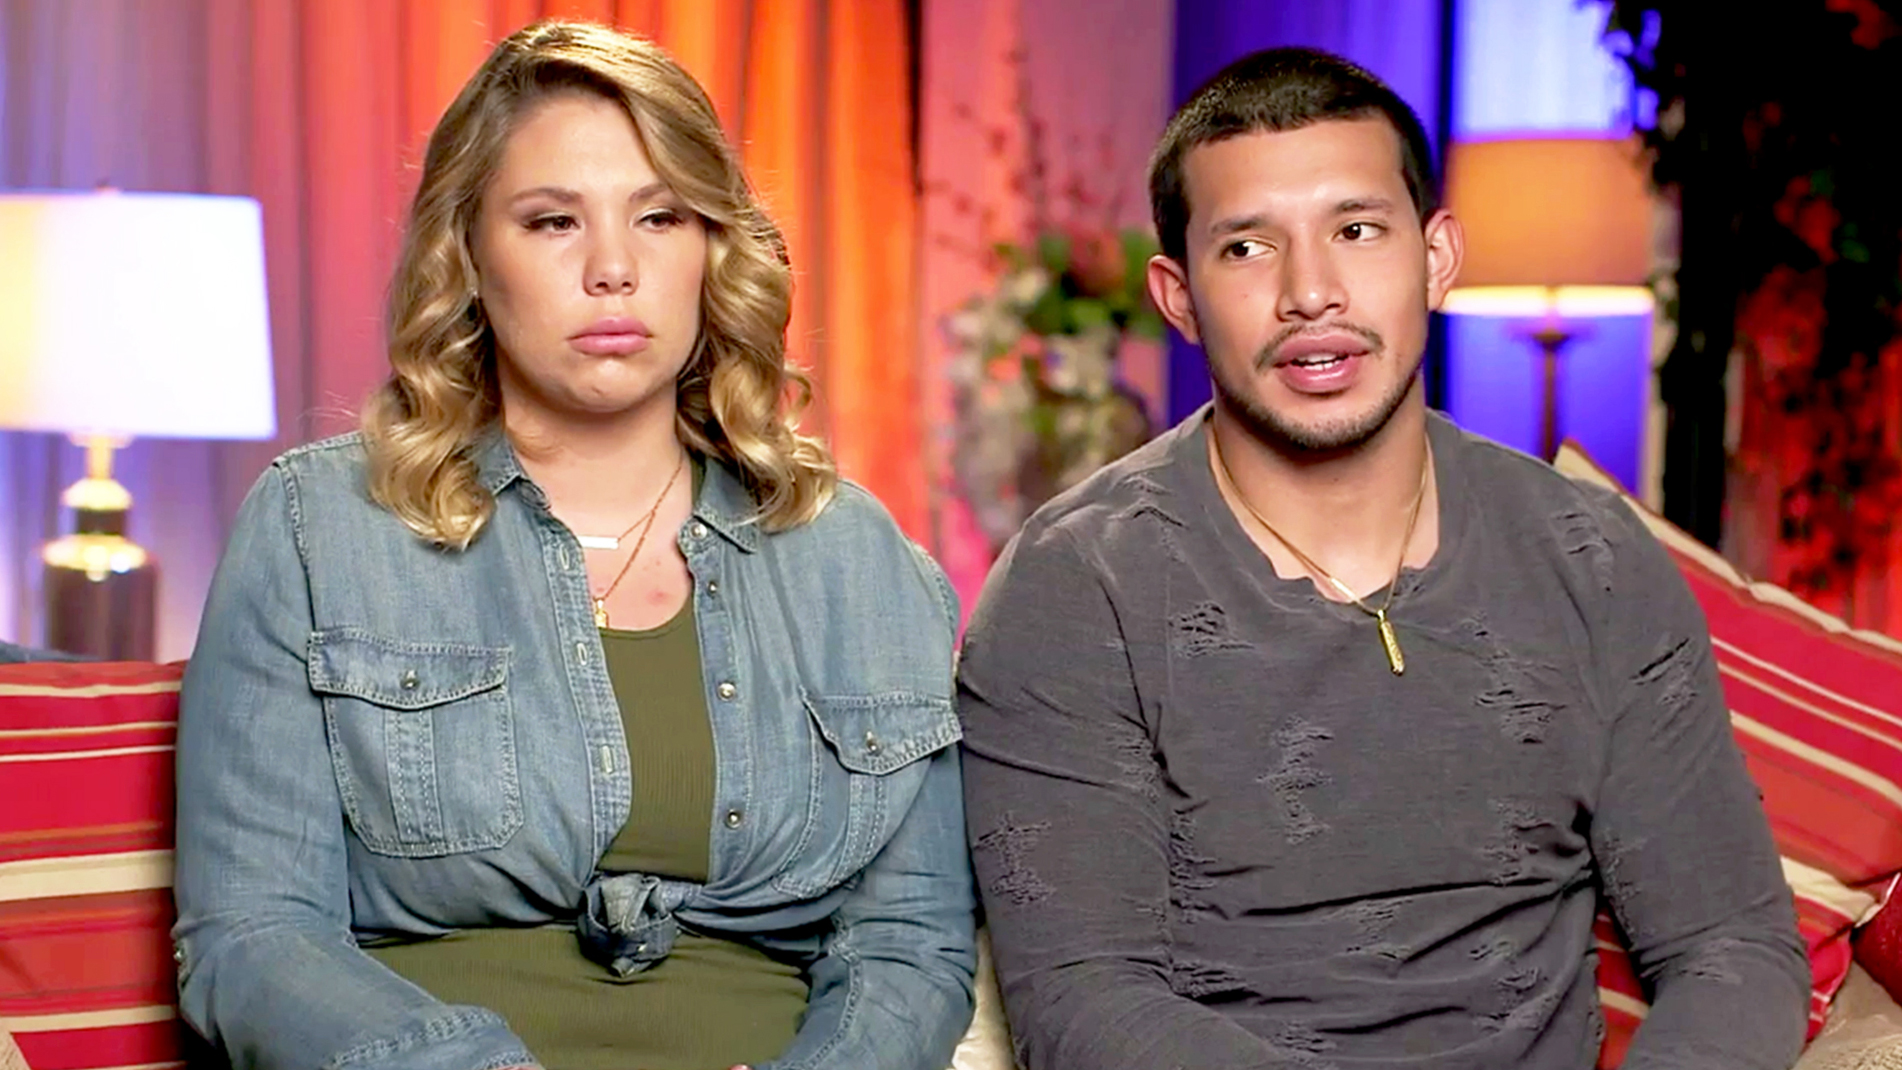 kailyn-lowry-explains-why-her-marriage-with-javi-did-not-work-out-hints-she-regrets-their-split